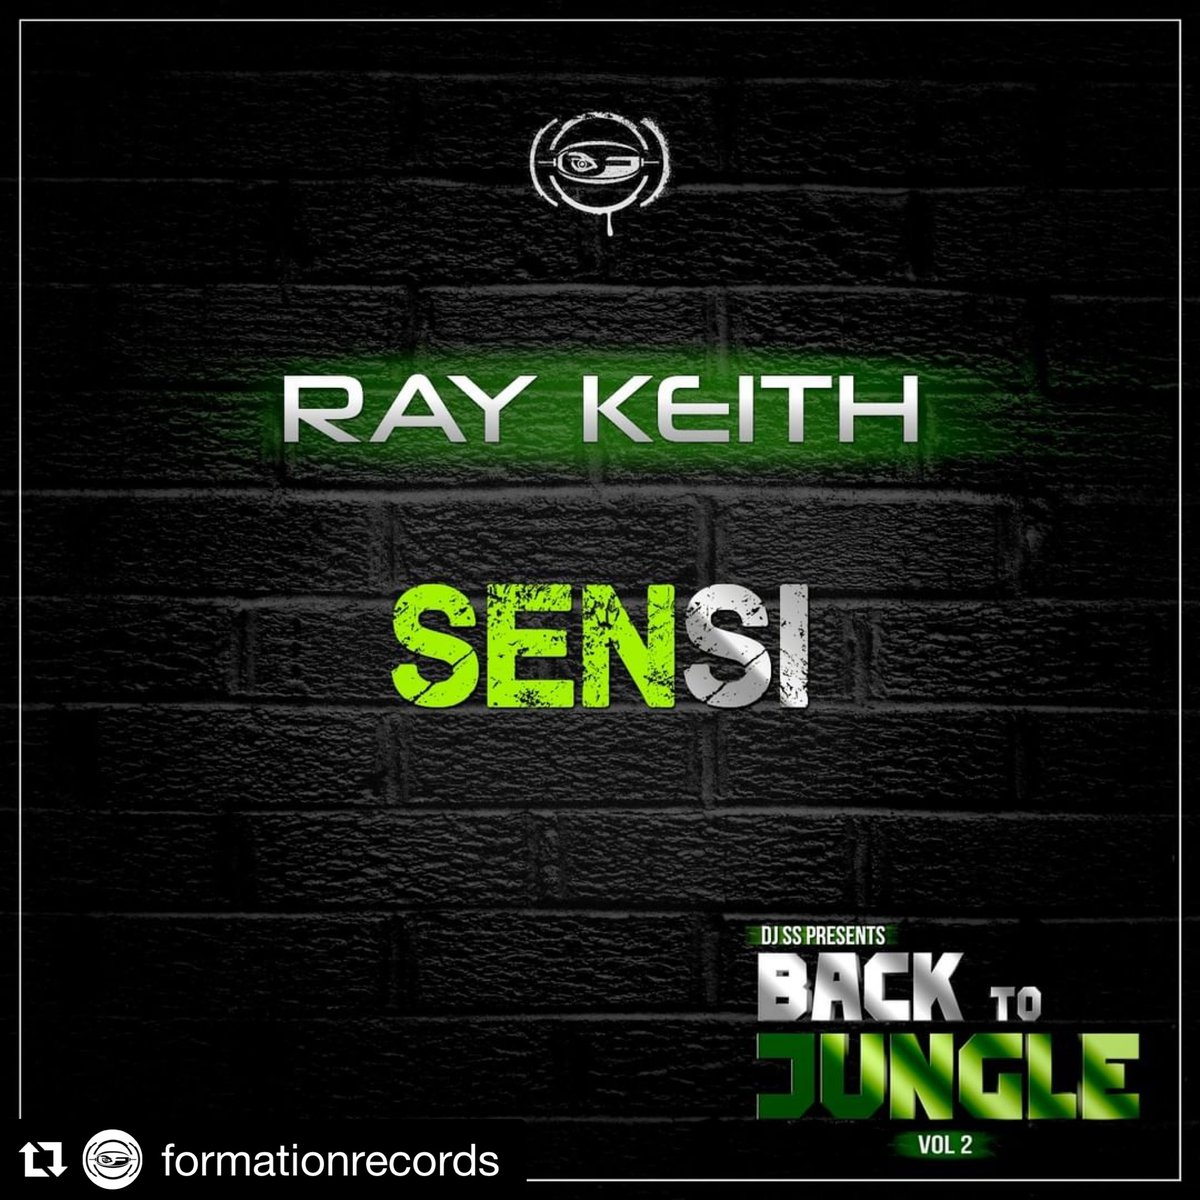 Who's ready for another BIG tune on Formation? 🔊  Back to Jungle Vol 2 is a heck of an LP... 🌴 🤩  Ray Keith - Sensi (Out 26/3/2021)  Be one of the first to listen here >    #dnb #jungle #Junglemusic #drumnbass